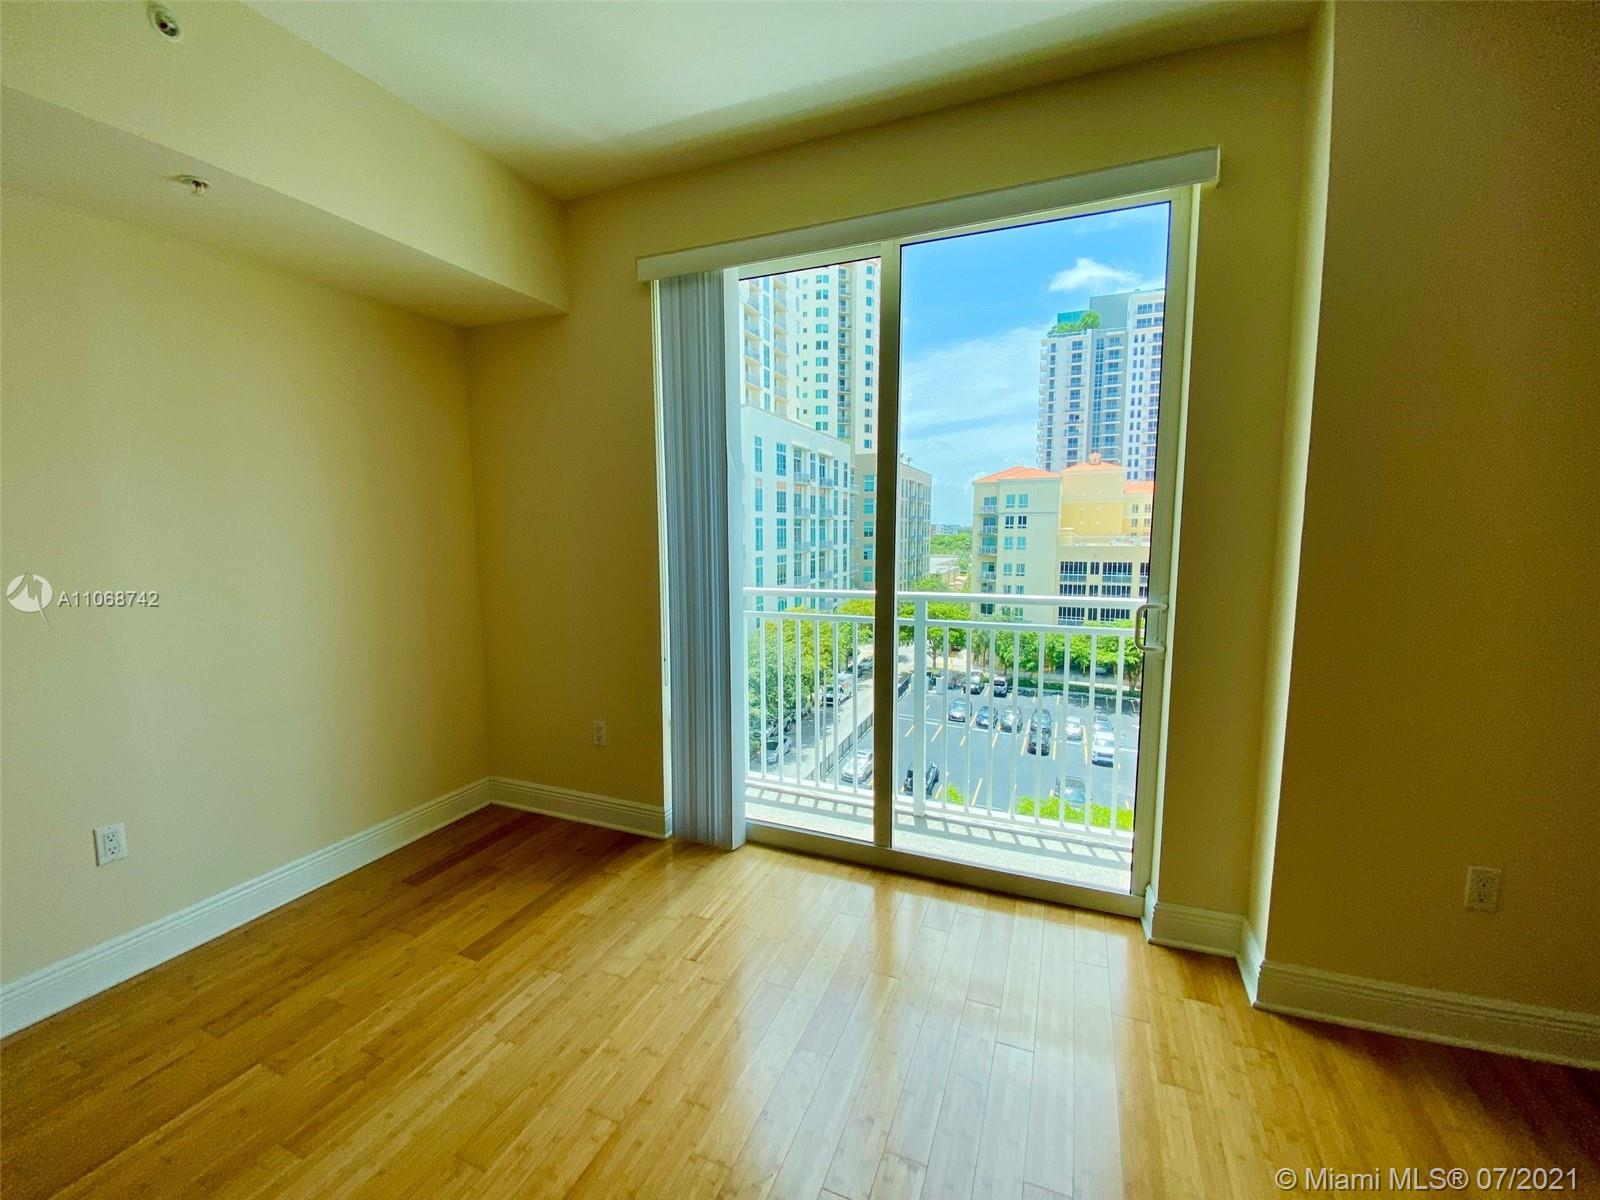 Downtown Dadeland #D613 - 04 - photo